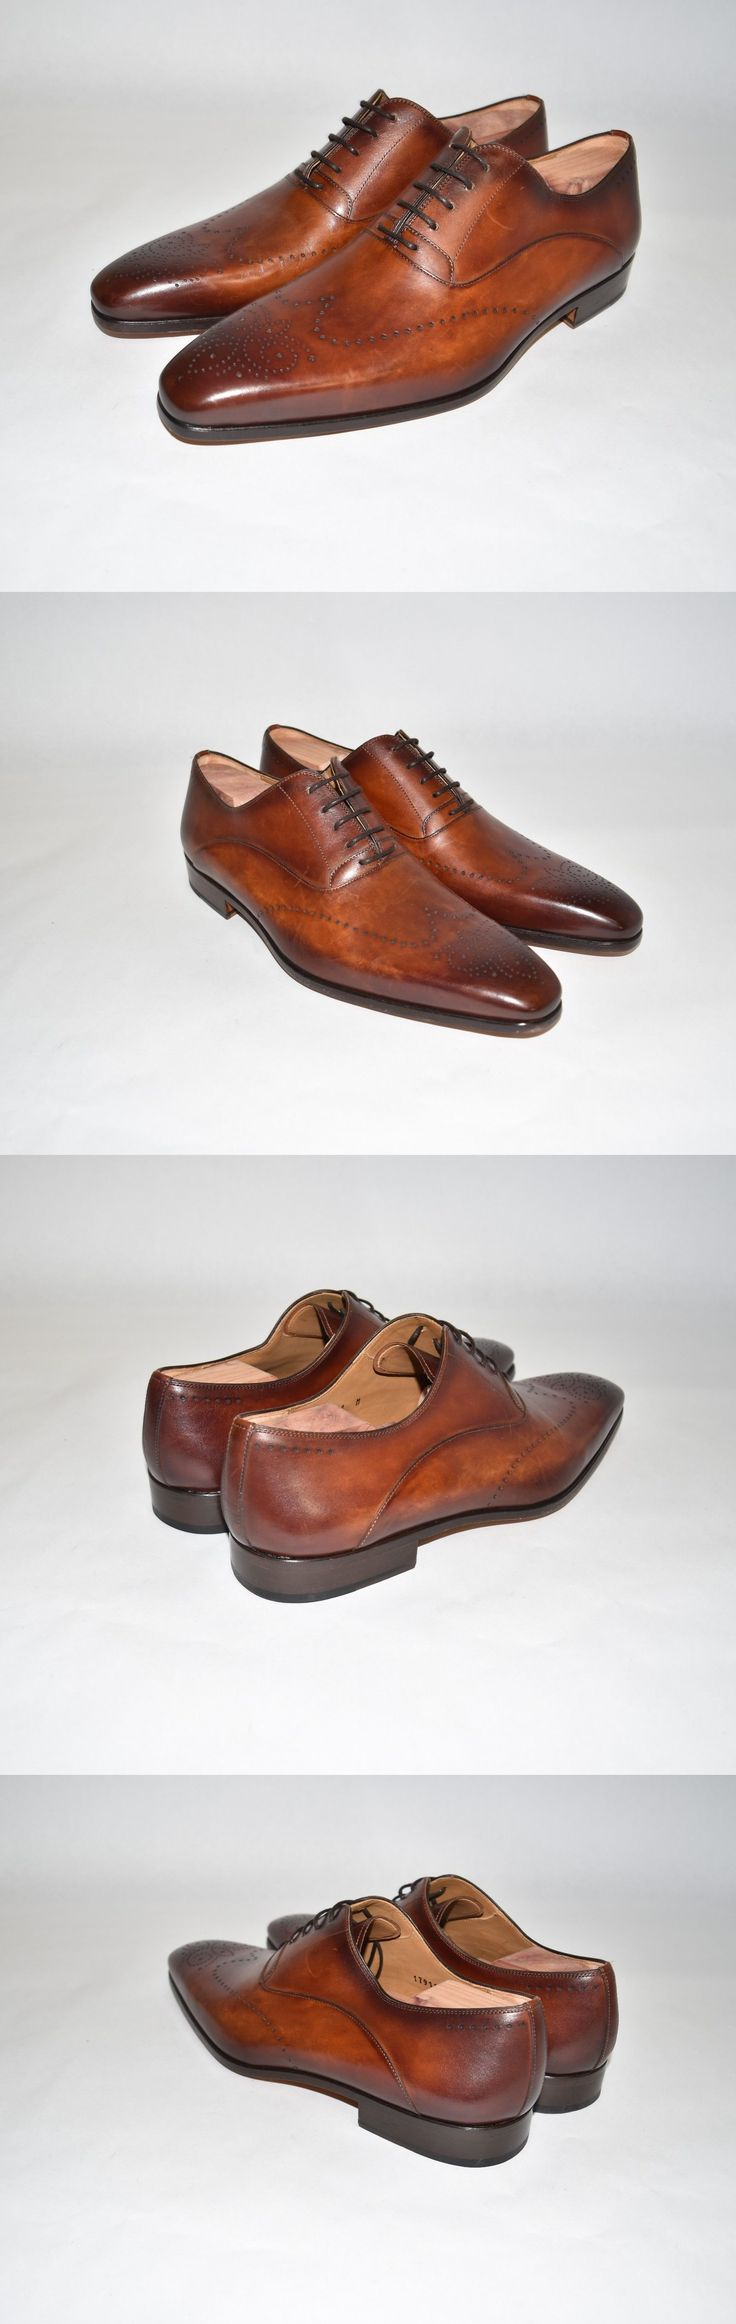 Men Shoes: New!! Magnanni Agusto Wingtip Brown Leather Men S Shoes Size 11 M -> BUY IT NOW ONLY: $190 on eBay!